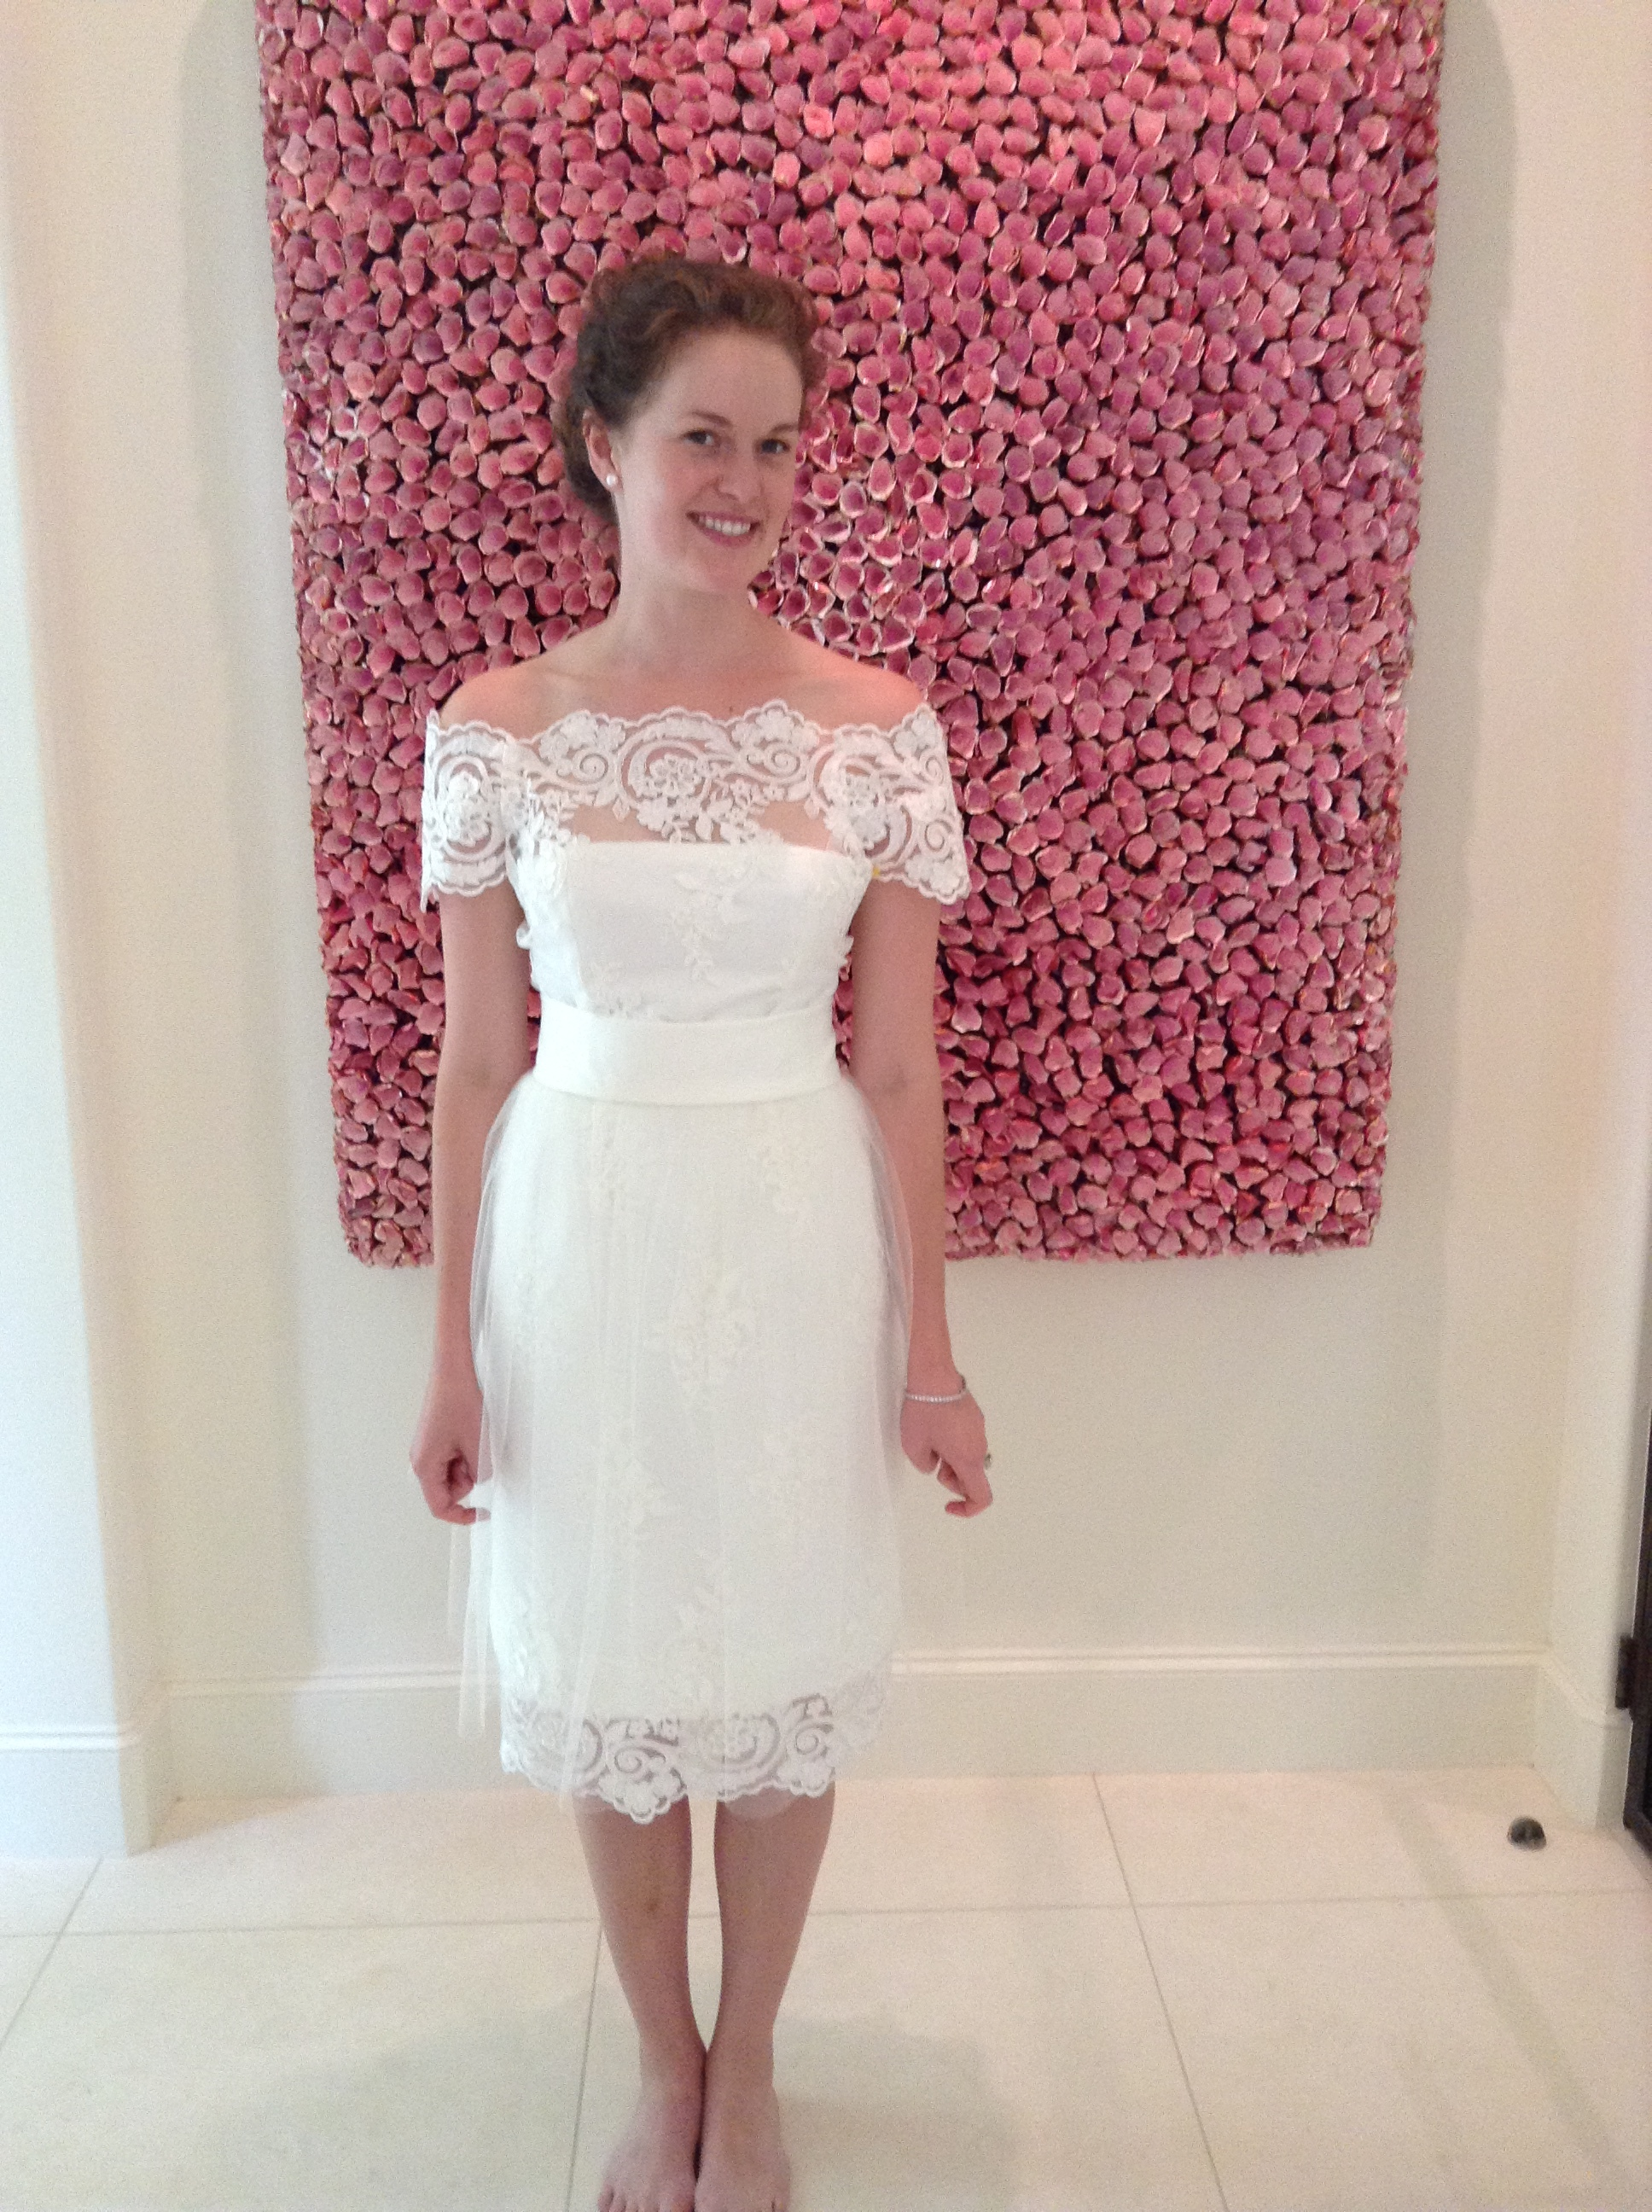 Another daughter's wedding dress made from the mother's wedding dress.